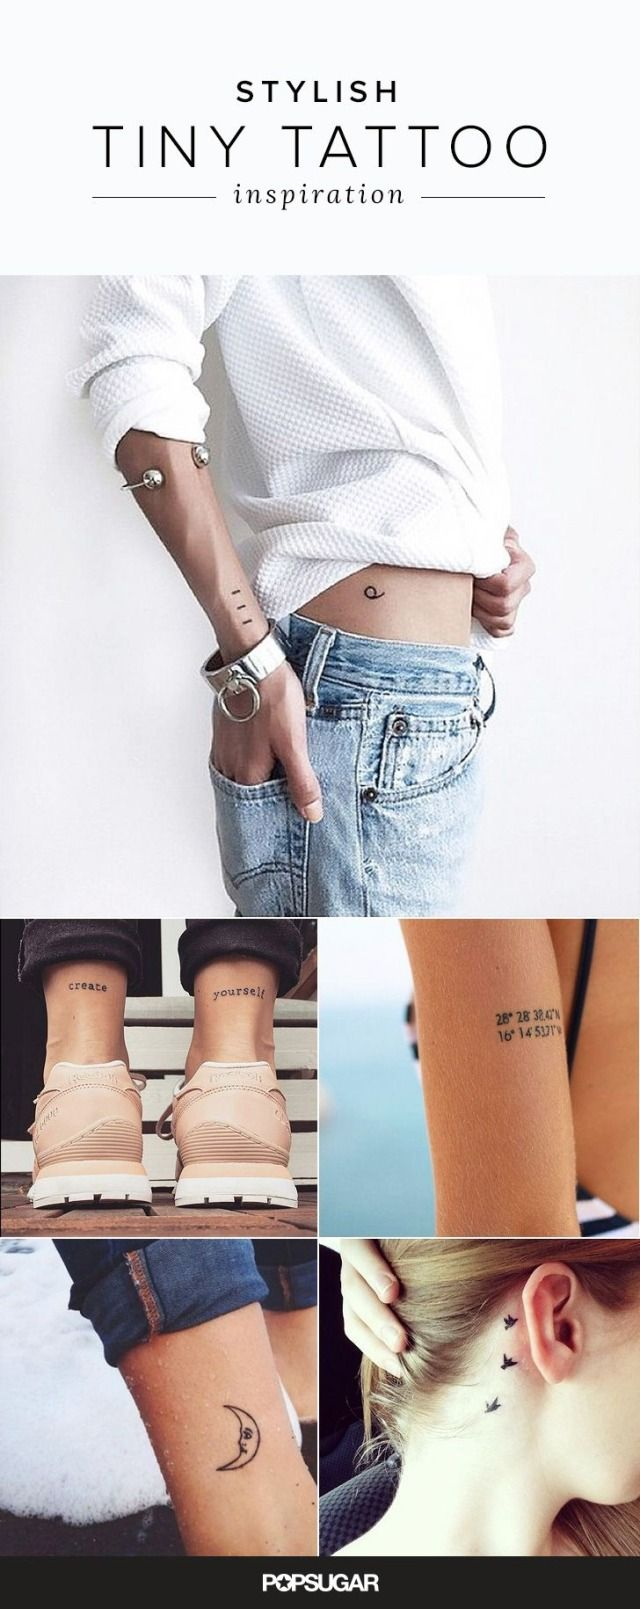 The best images about tattoos and piercings that i love on